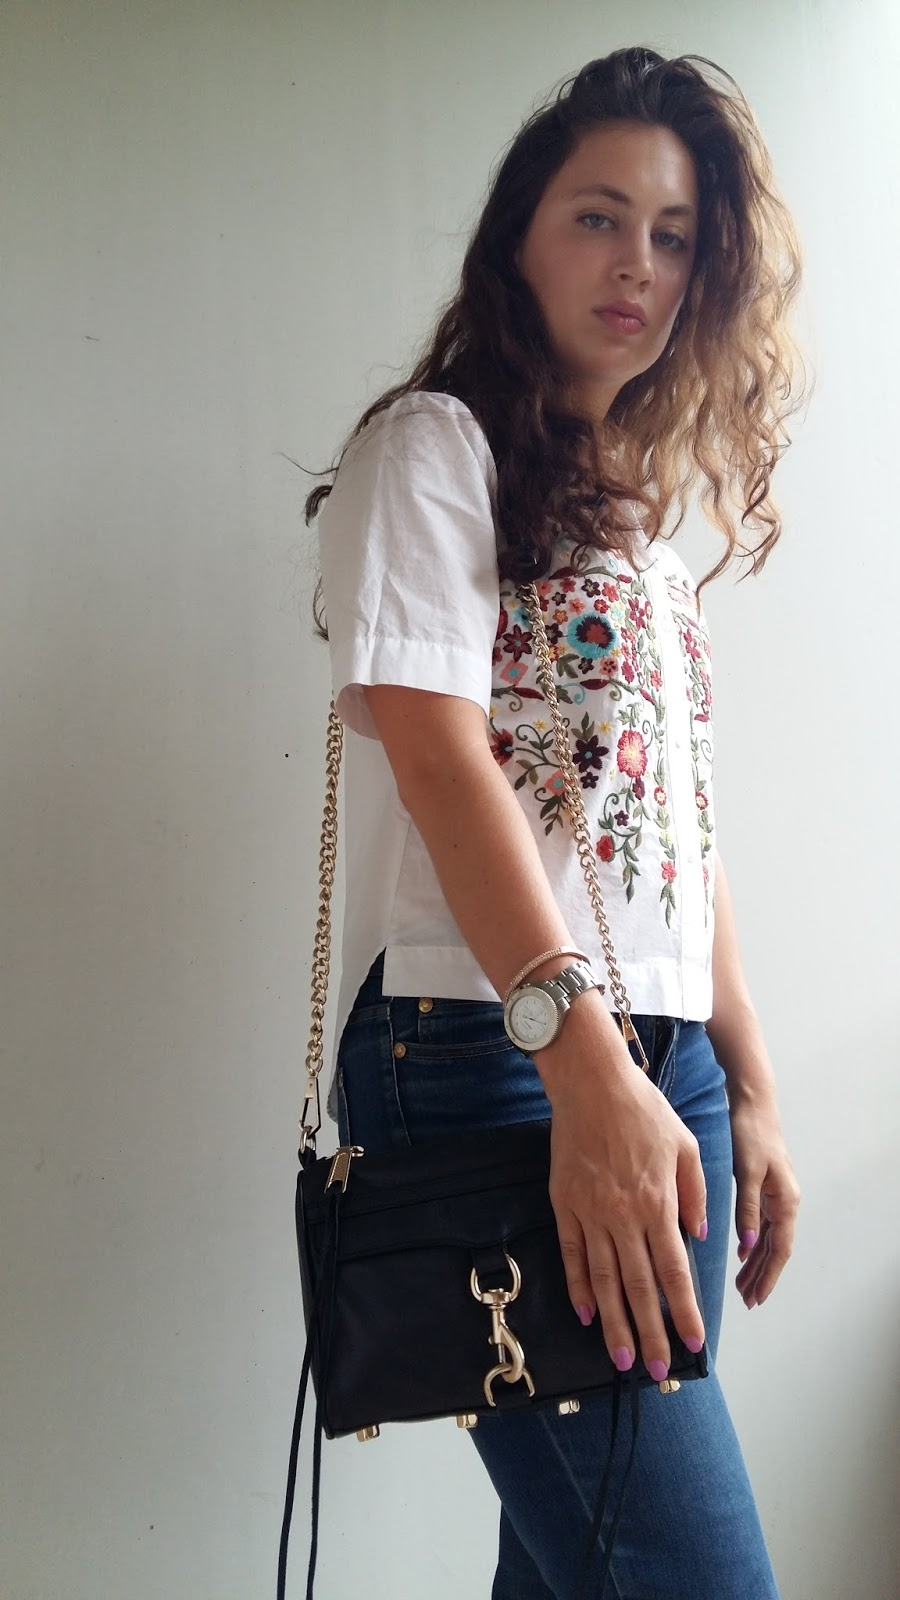 Cristina from The Brunette Nomad, Dallas and Swiss based fashion blogger is styling a 70's inspired embroidered top into her modern summer wardrobe